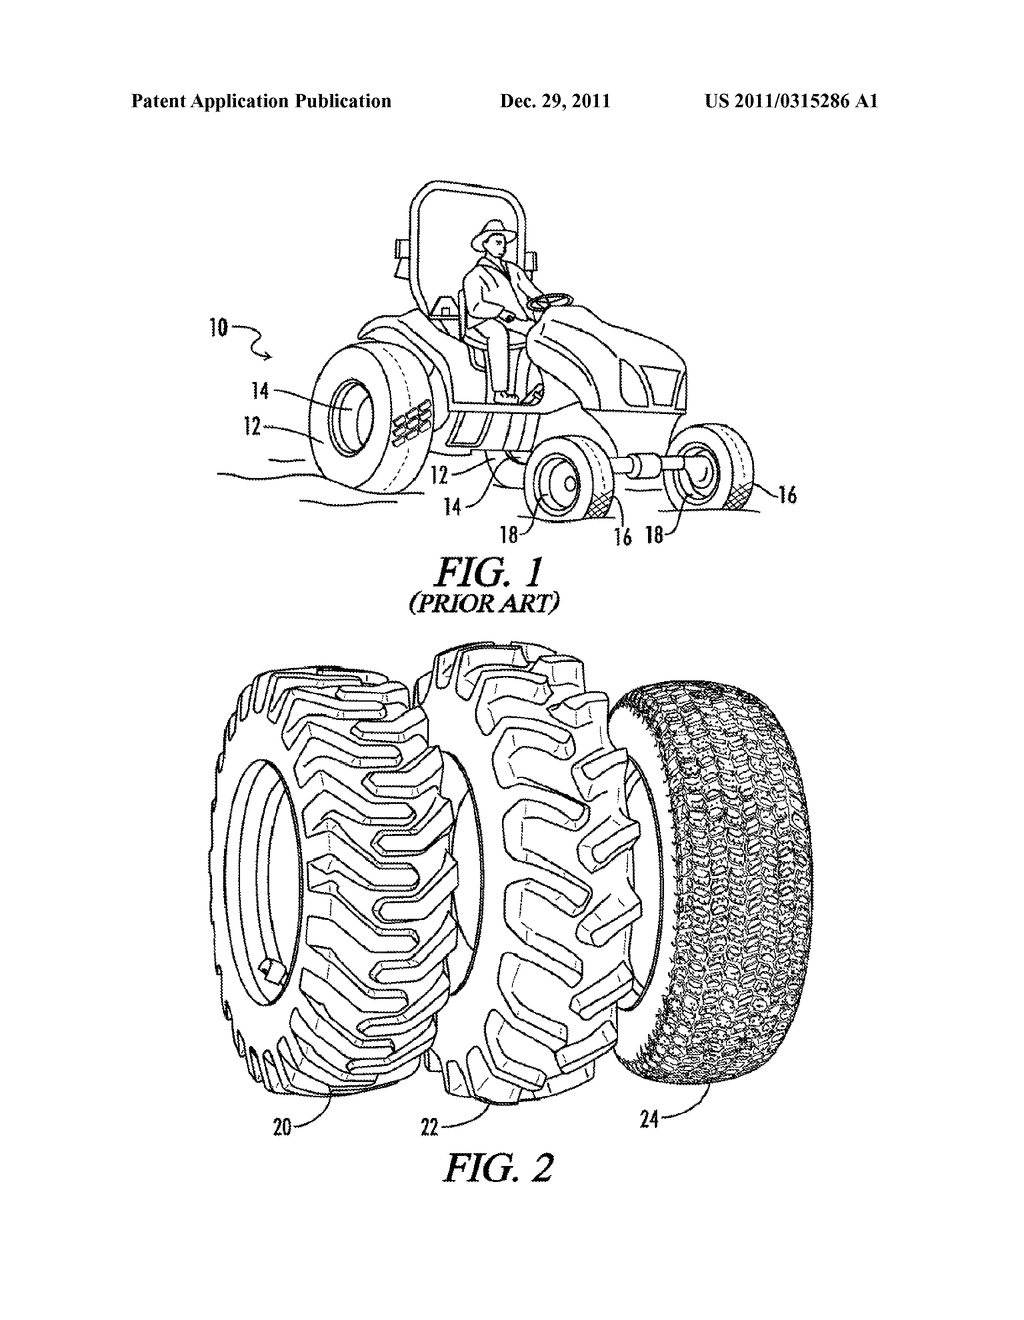 1478100 2017 additionally Tractor Tires Diagram also Tire Width Definition besides Car Suspension Diagram in addition Health. on tire sizes explained diagram